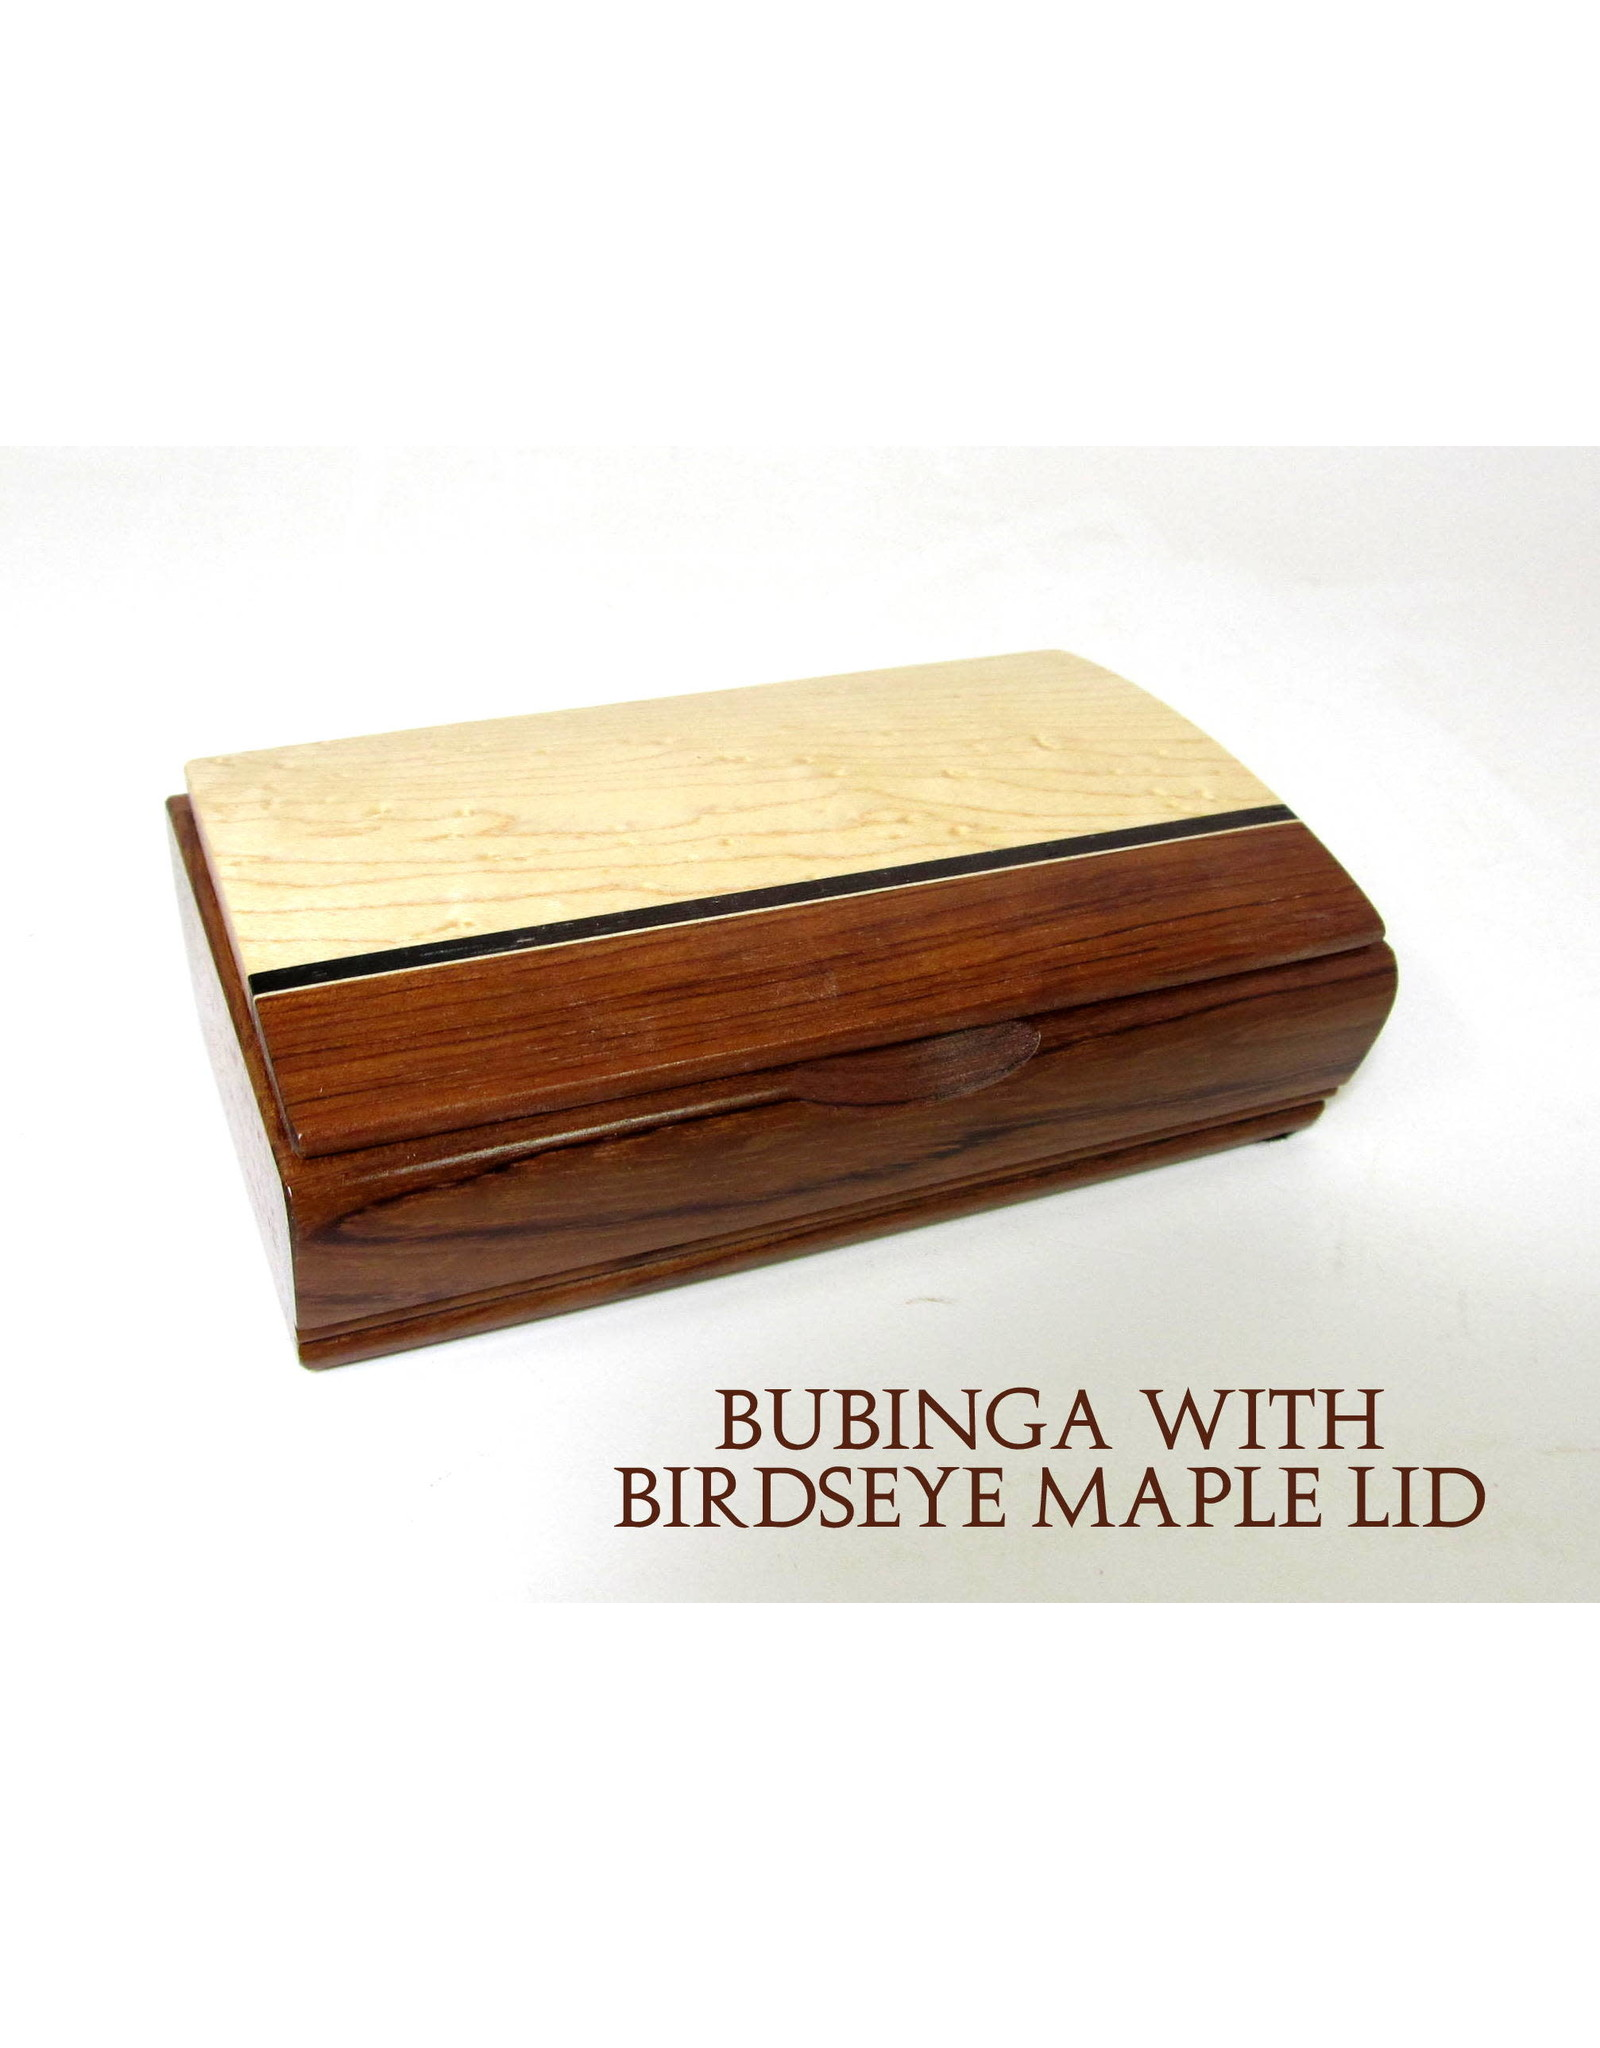 Mikutowski Woodworking TREASURE WOOD BOX (Asst. Stripes, Engraved Quote) MIKM